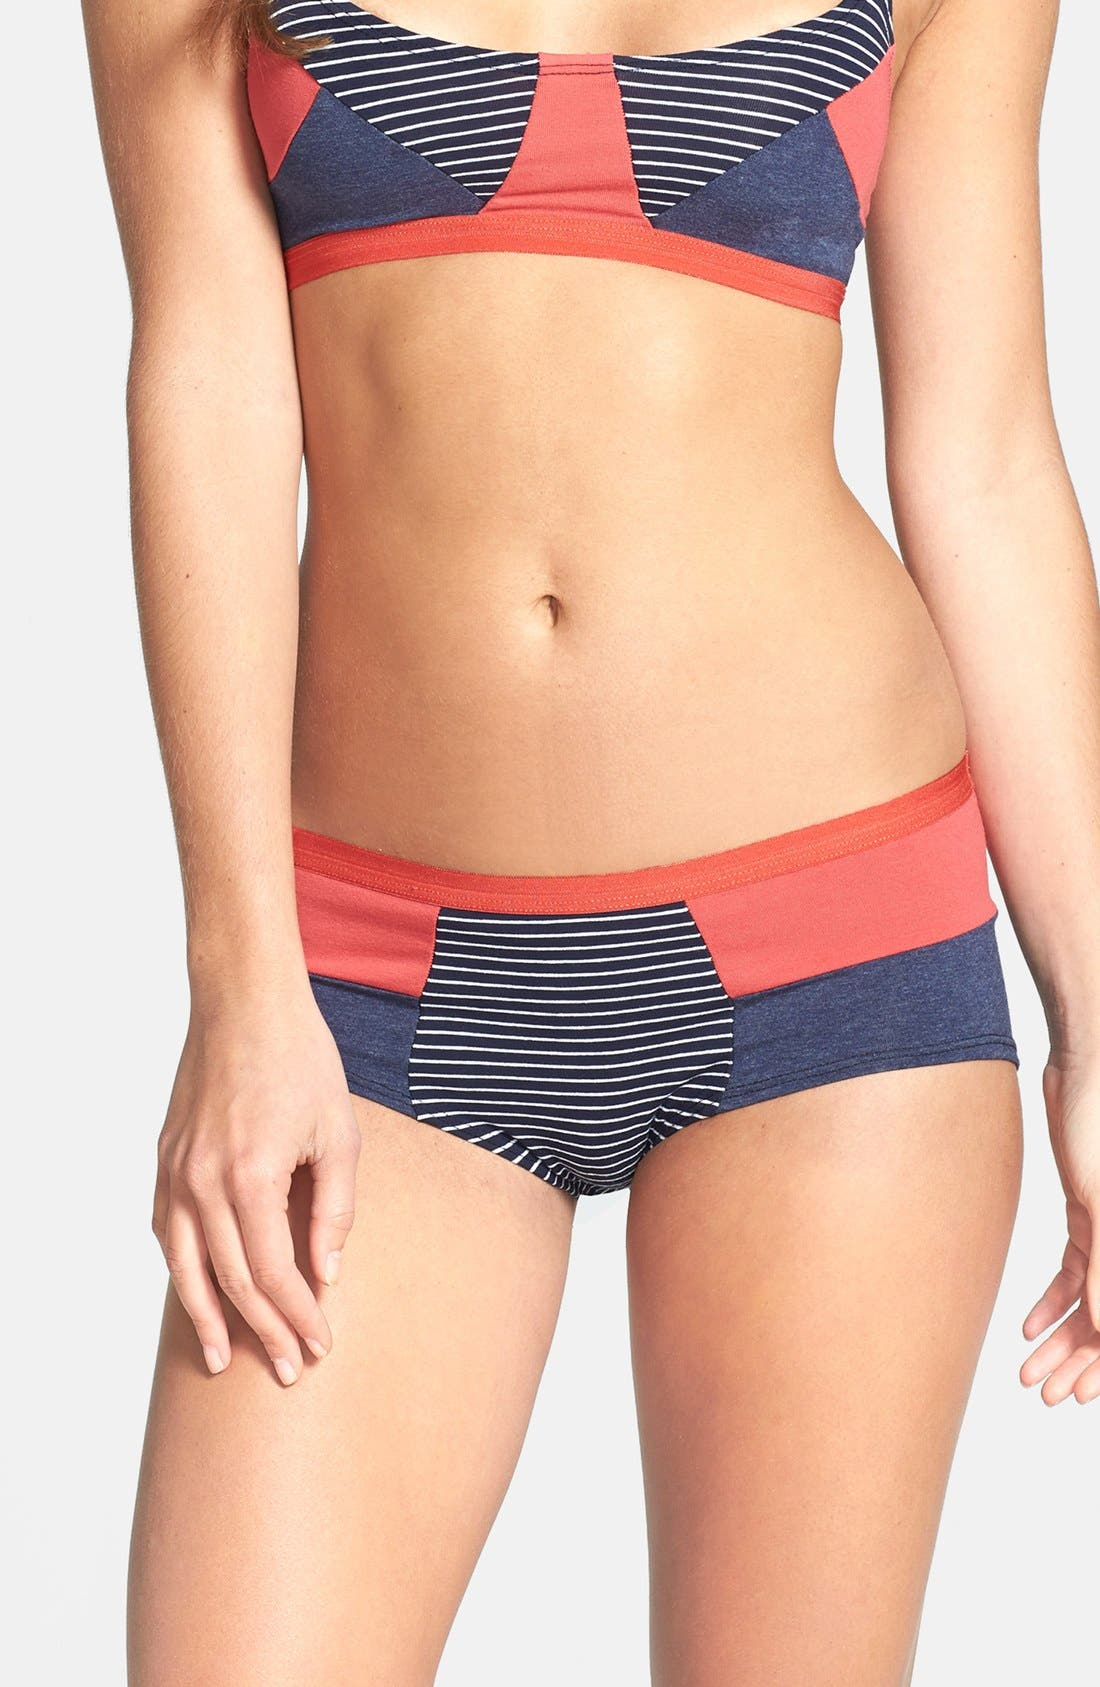 Alternate Image 1 Selected - Only Hearts 'So Fine' Patchwork Hipster Briefs